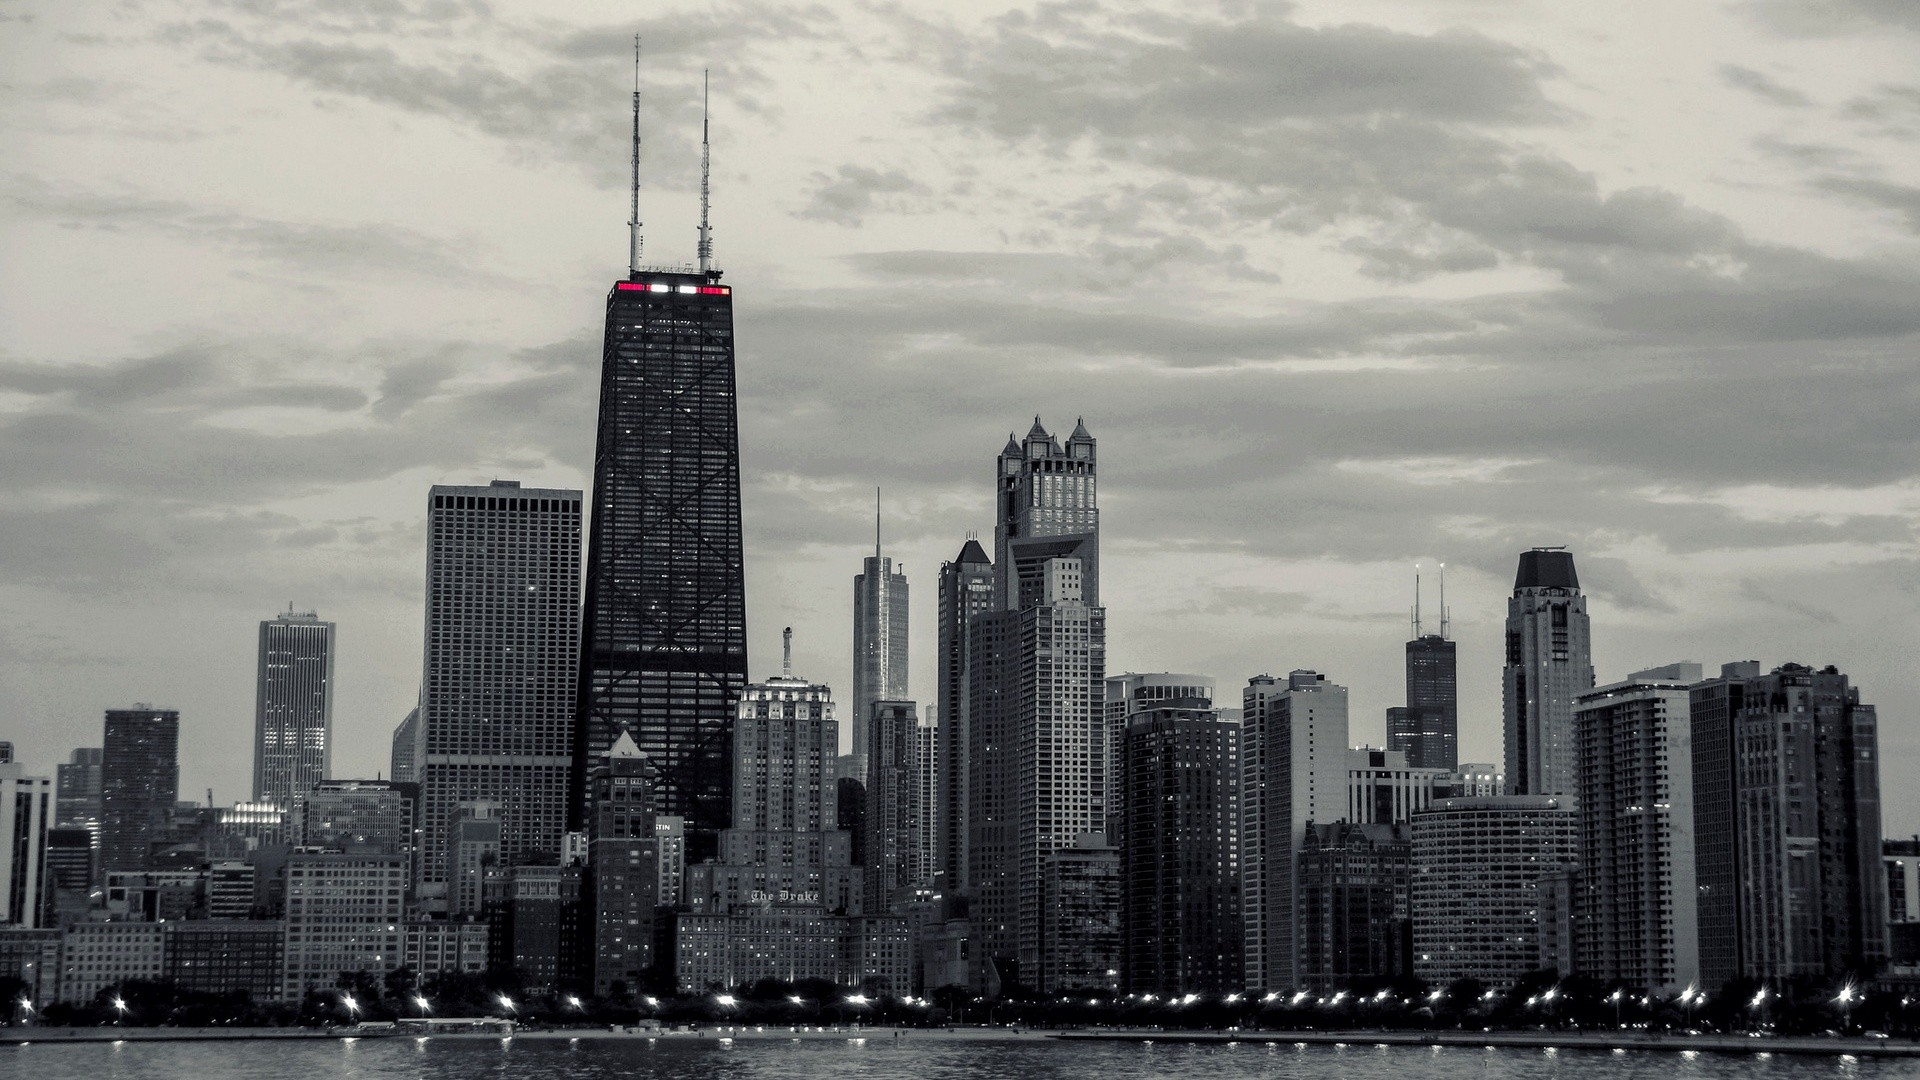 1920x1080 Chicago Skyline Wallpapers